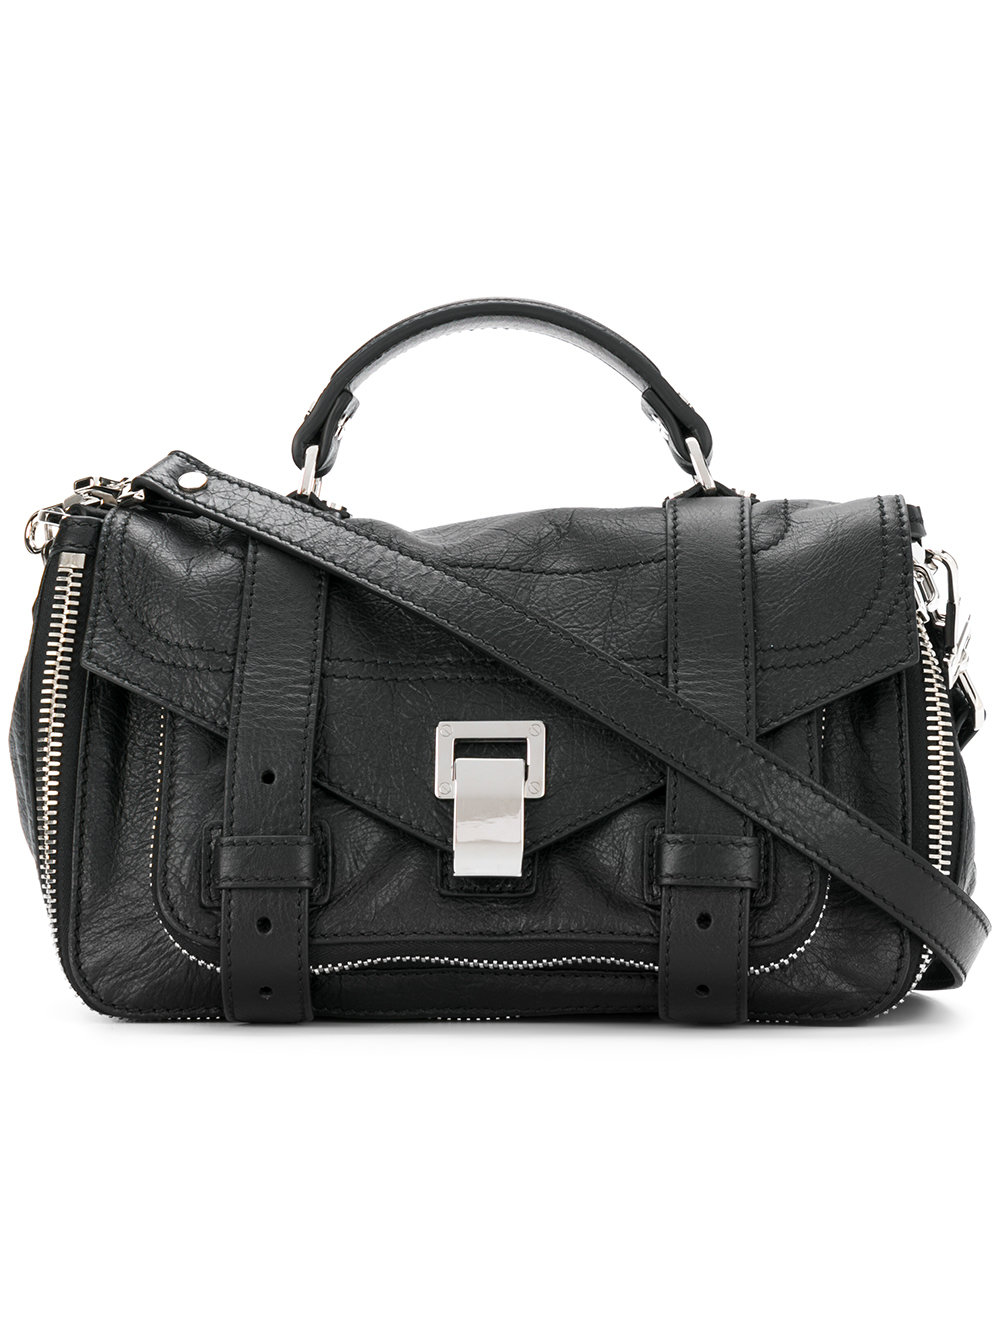 Proenza Schouler PS1 TINY ZIP